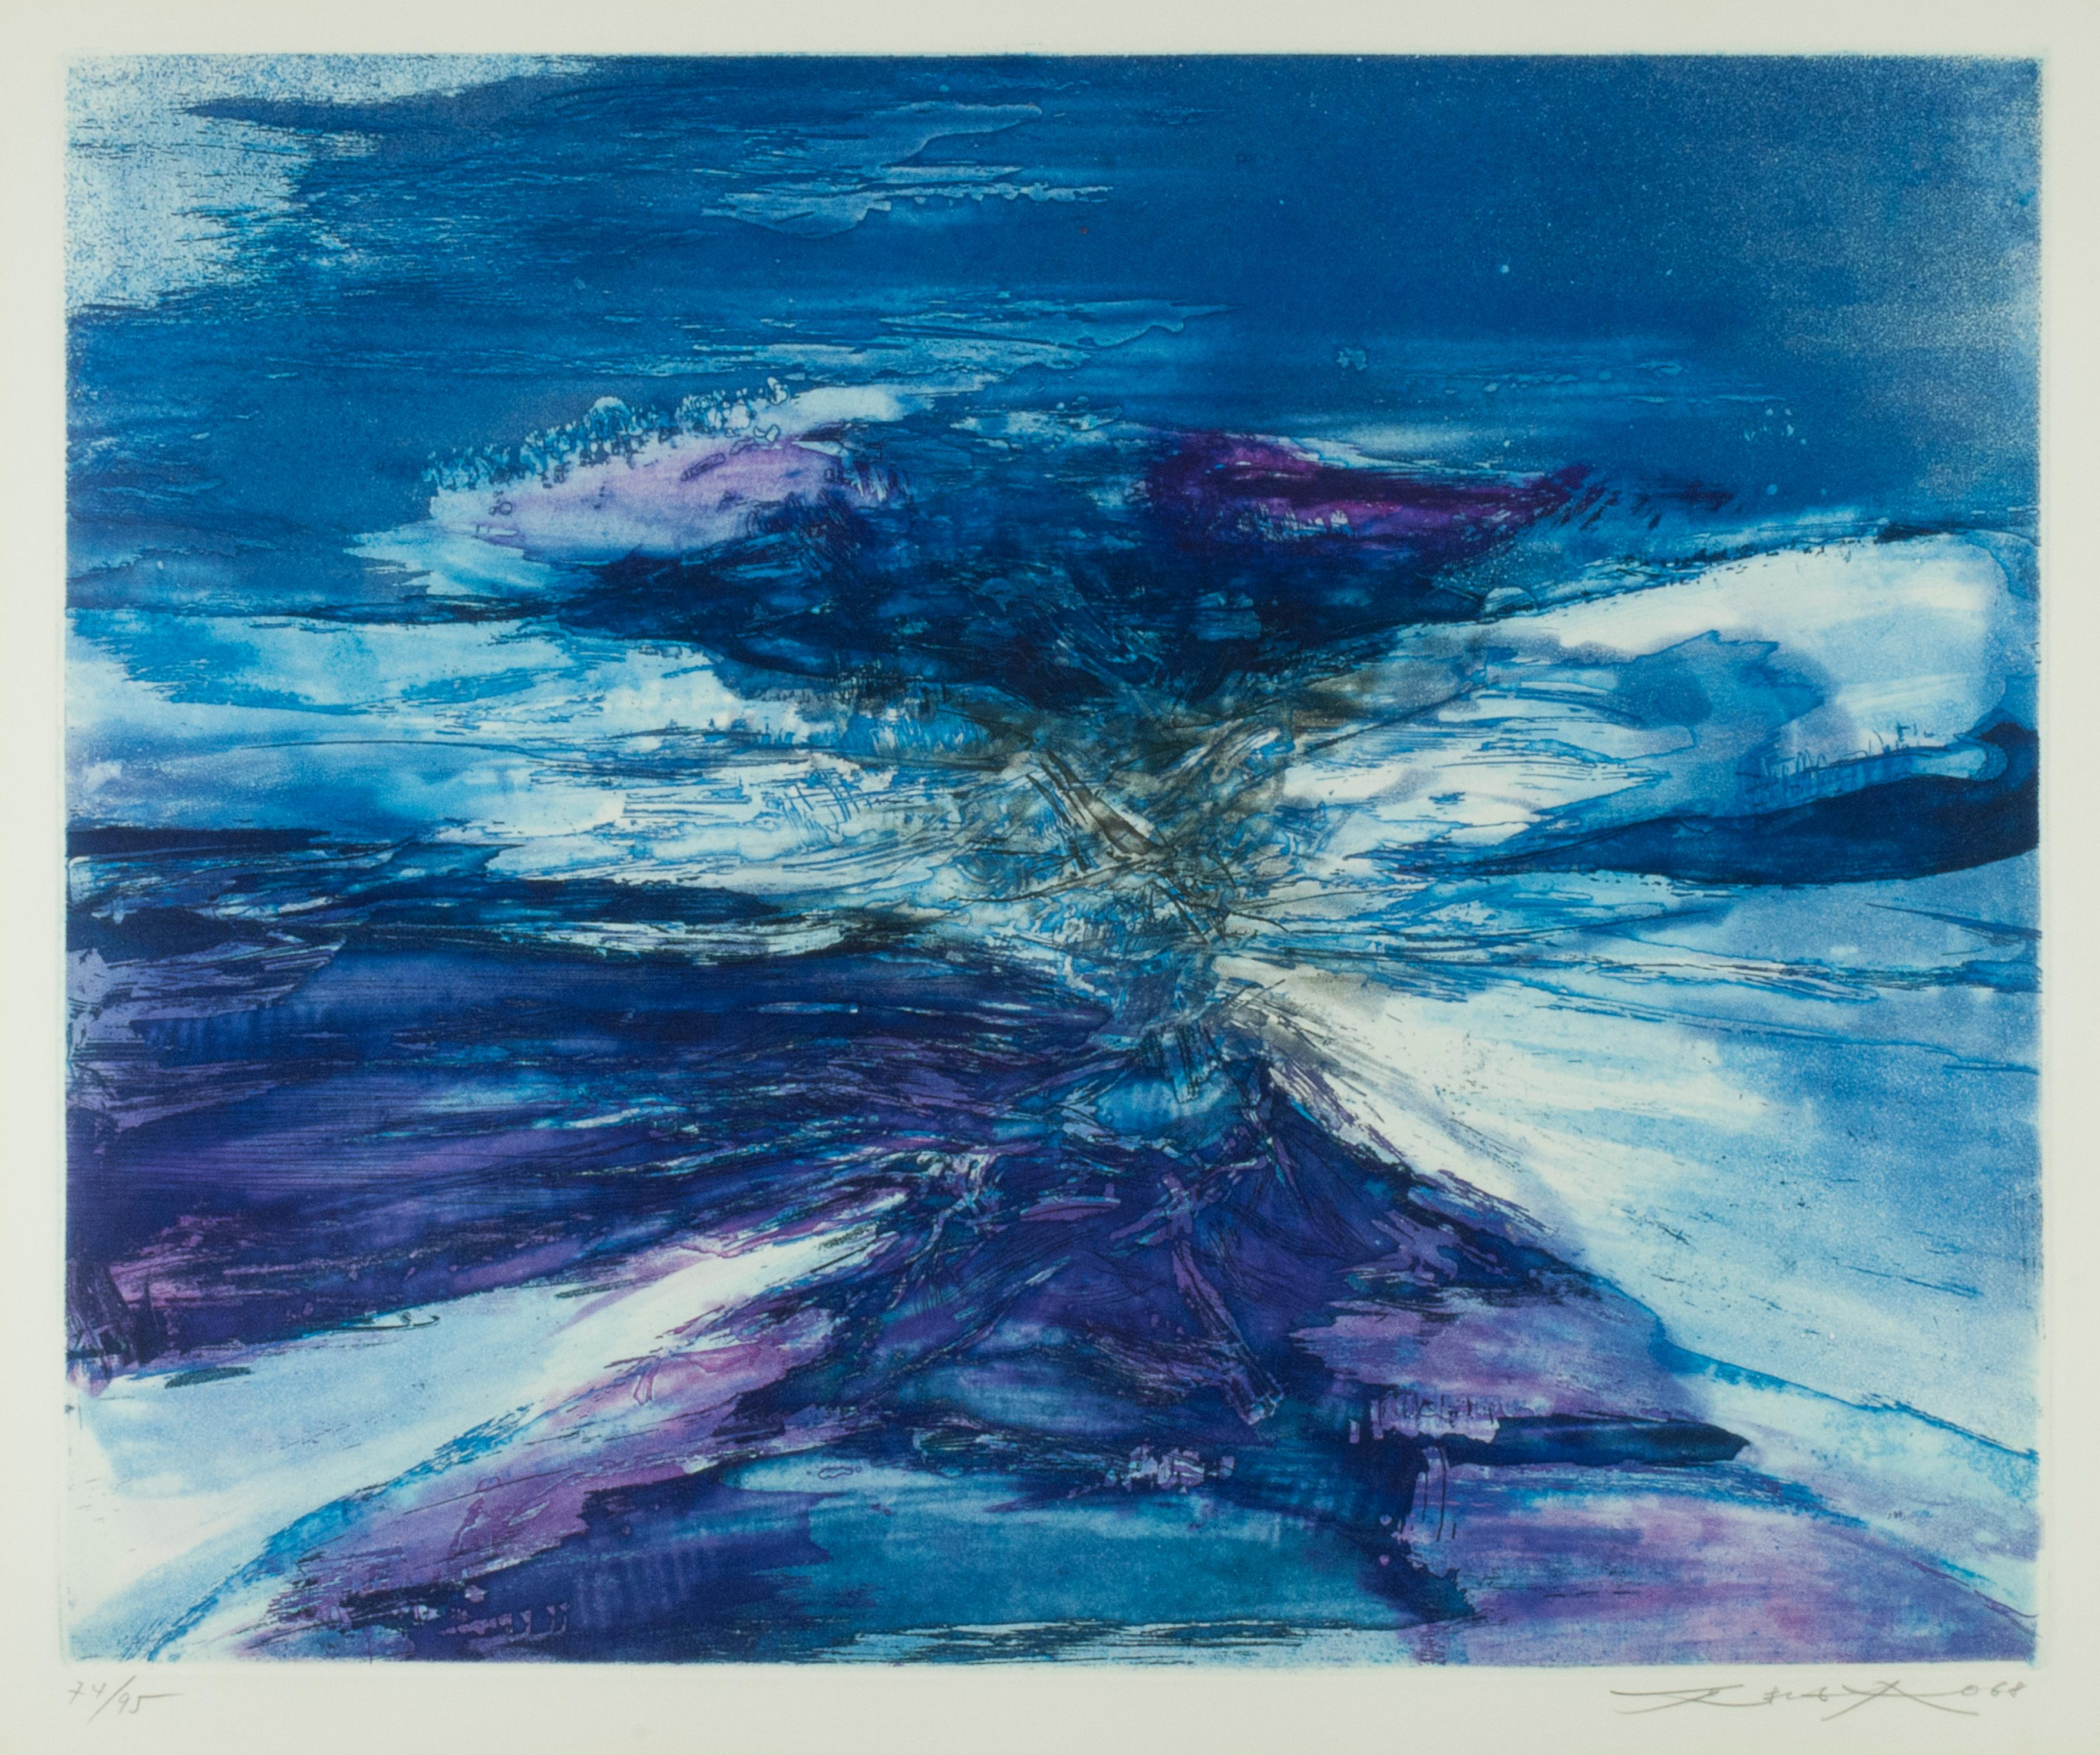 Blue Rythms (Agerup 188)  after the 1966 painting, Peinture.